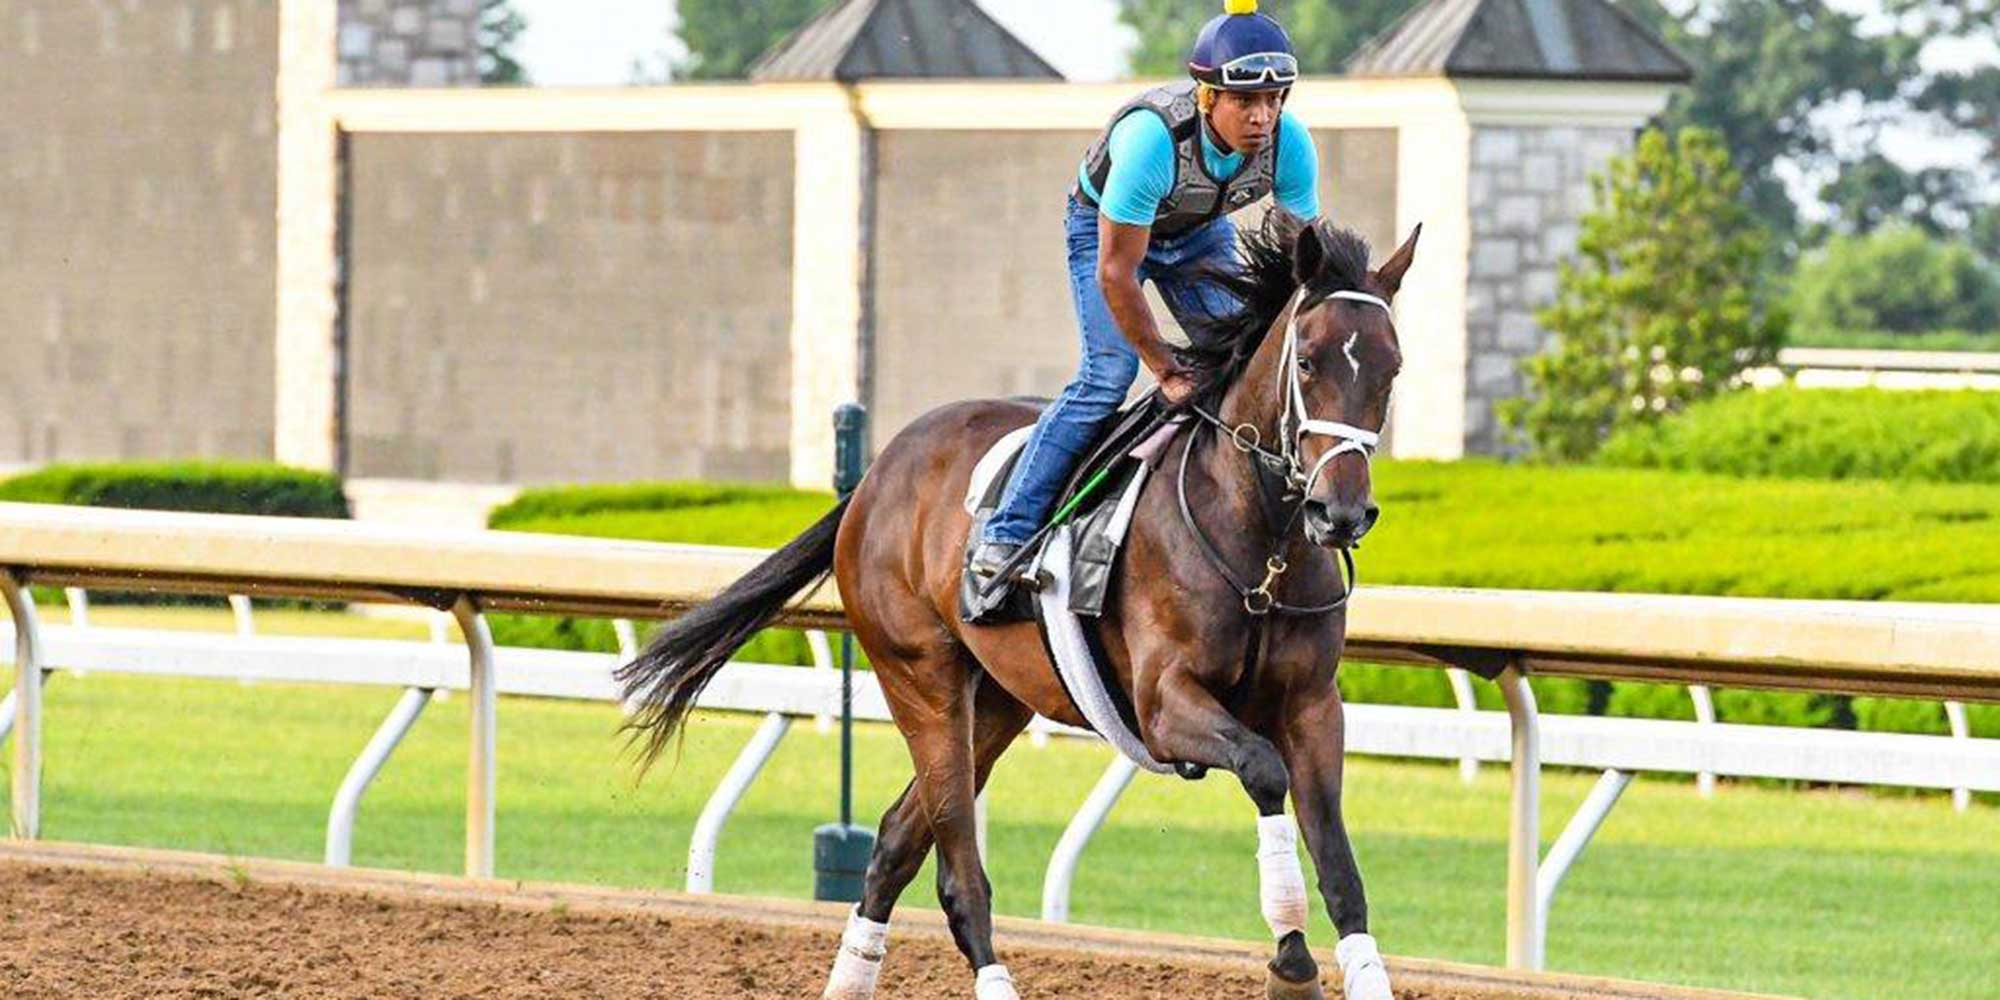 EQ Graphics | Jockey Galloping Thoroughbred Racehorse on Track